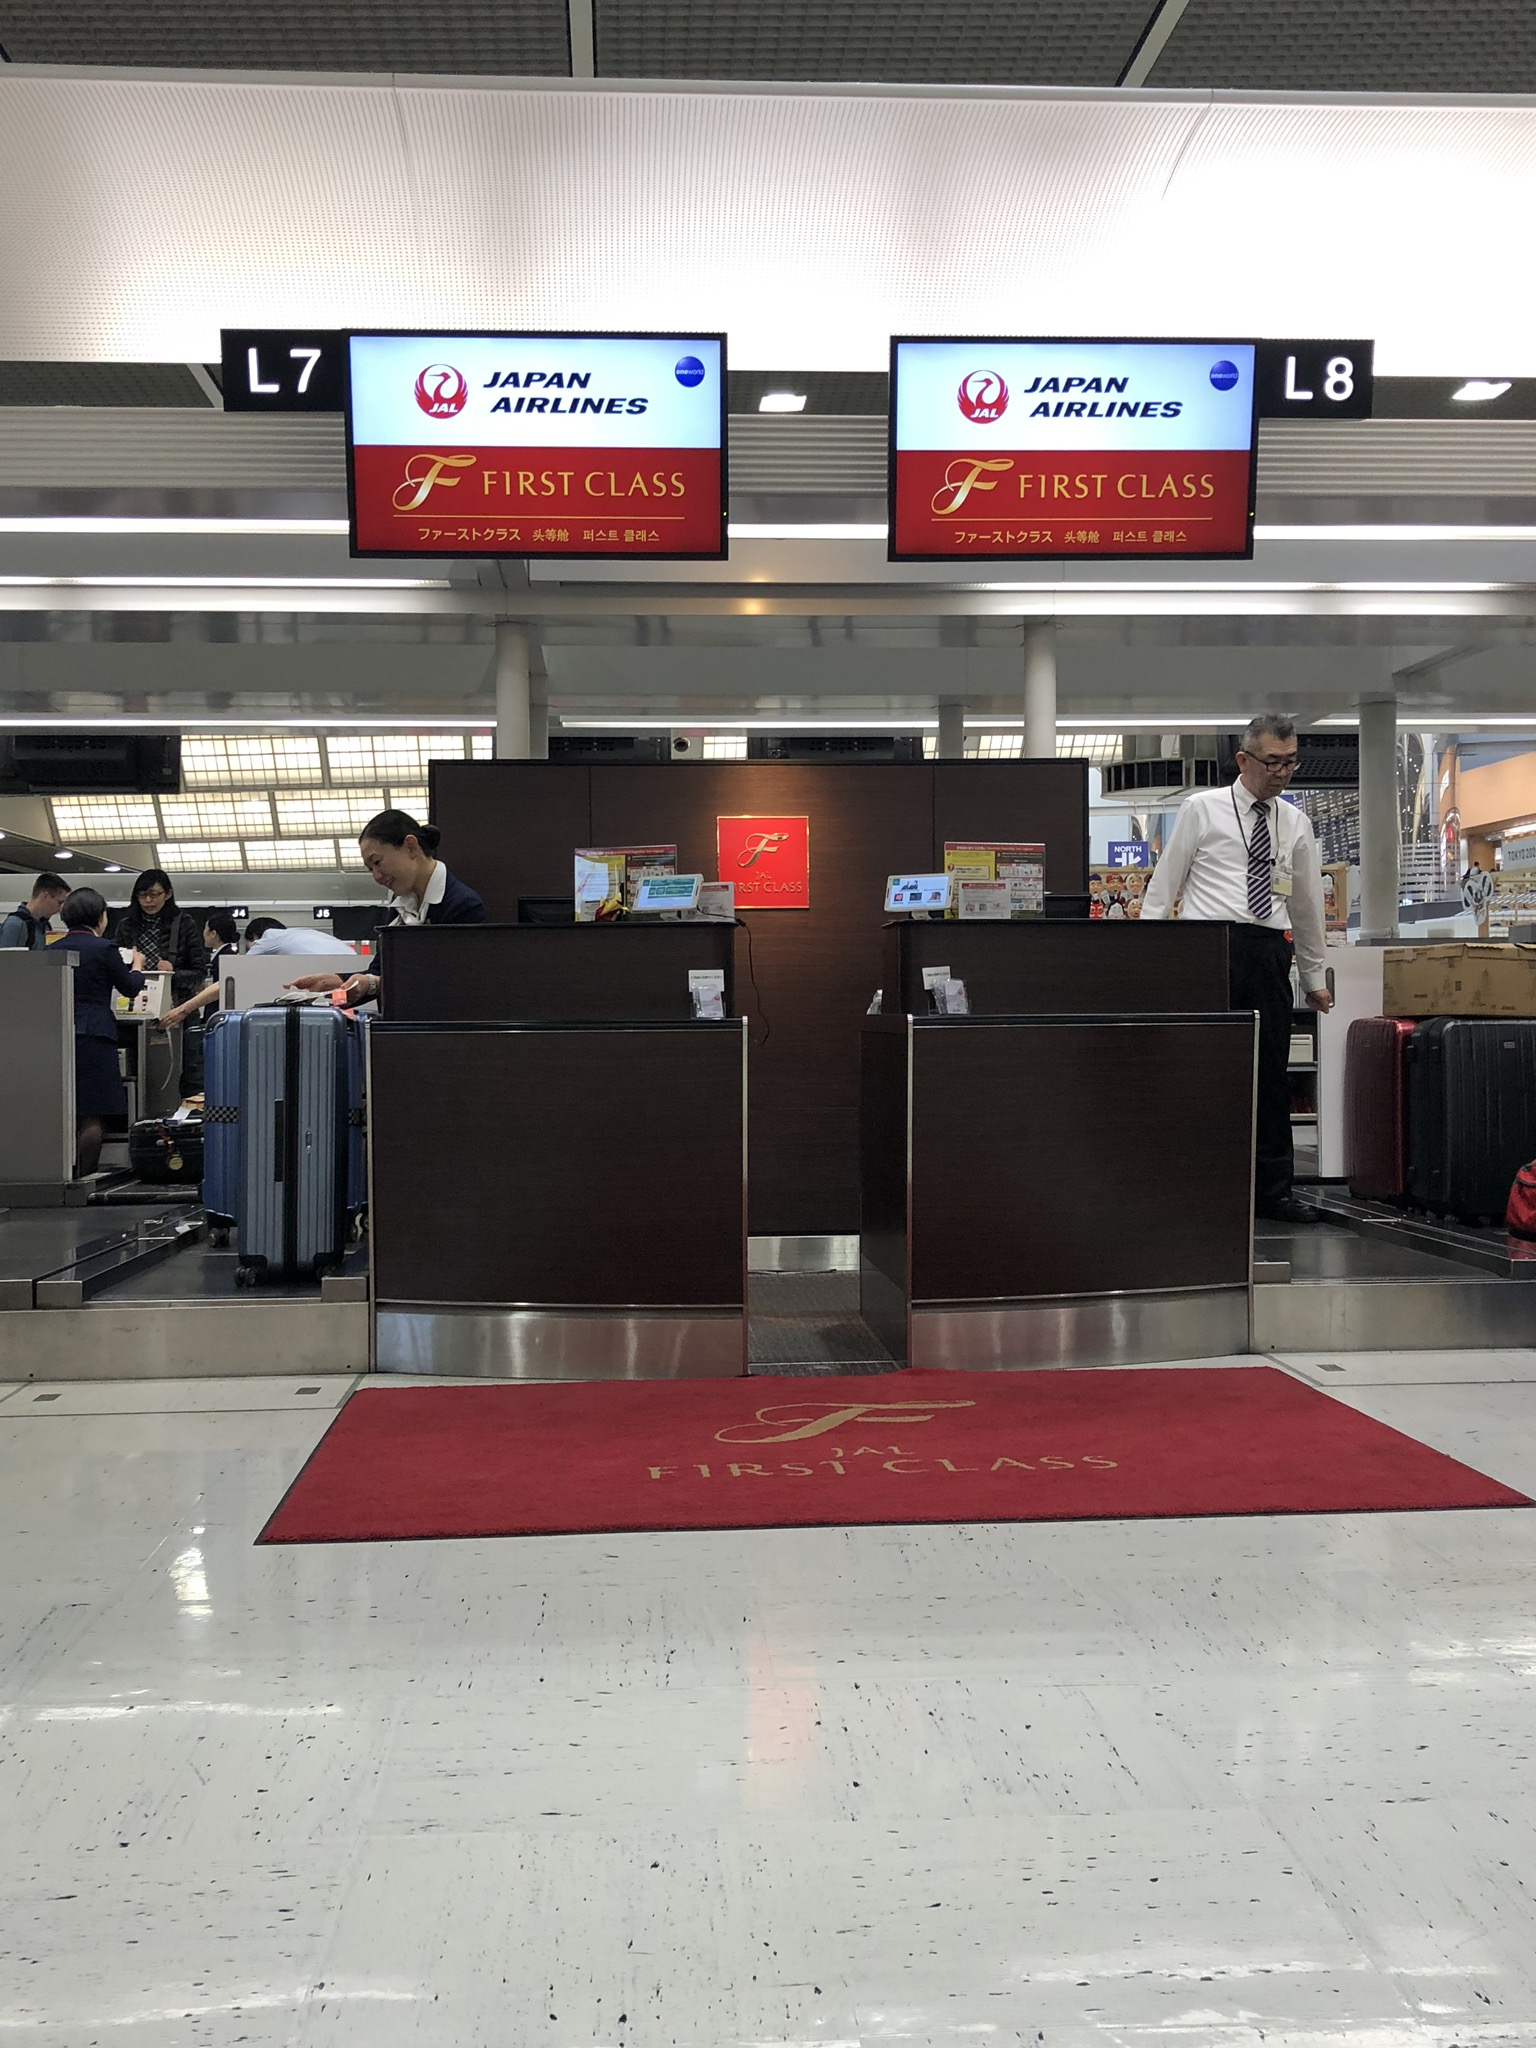 Japan Airlines First Class Check-in